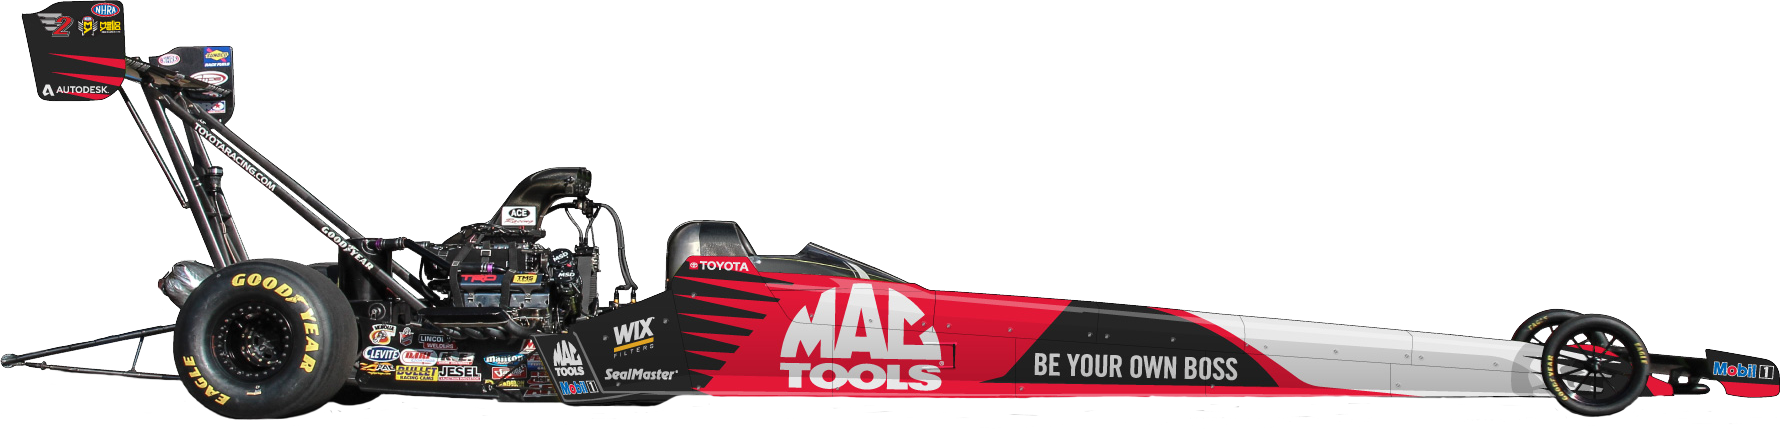 Kalitta Top Fuel Dragster